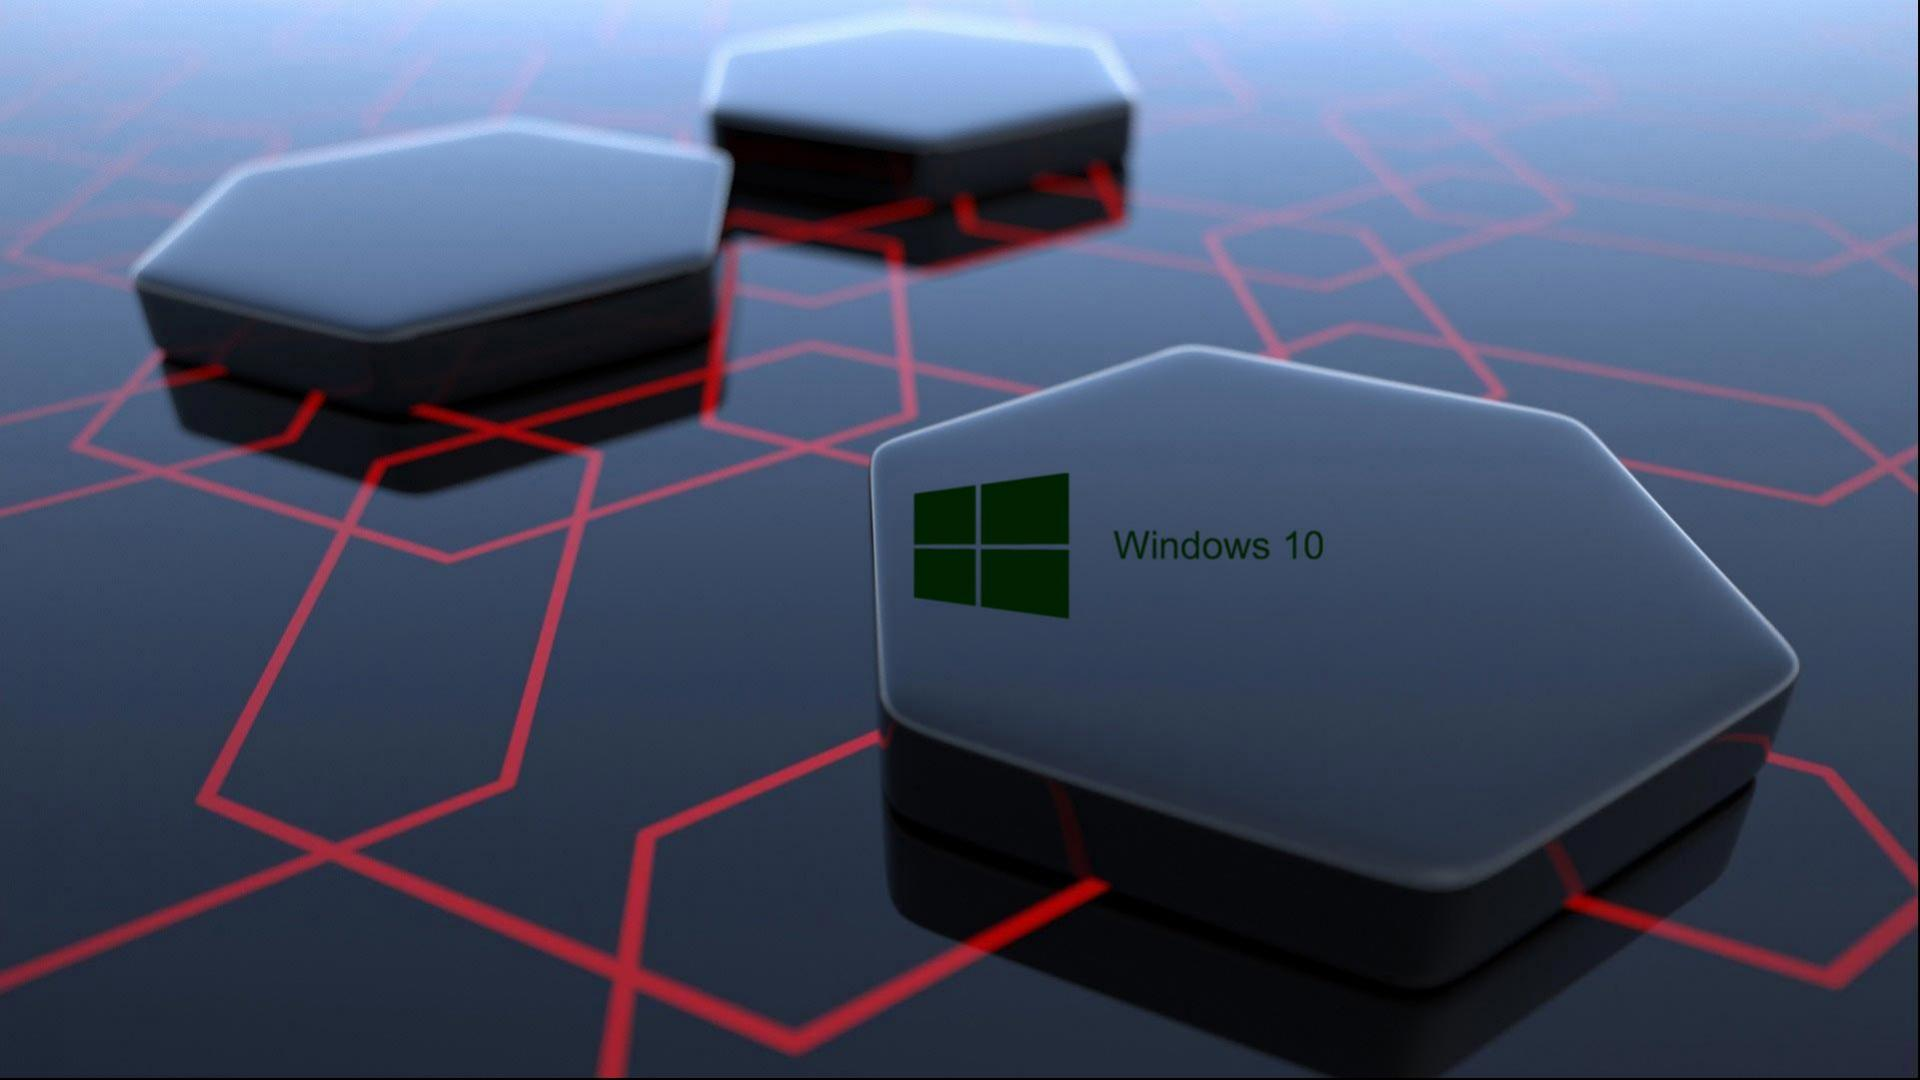 windows 10 3d - photo #1